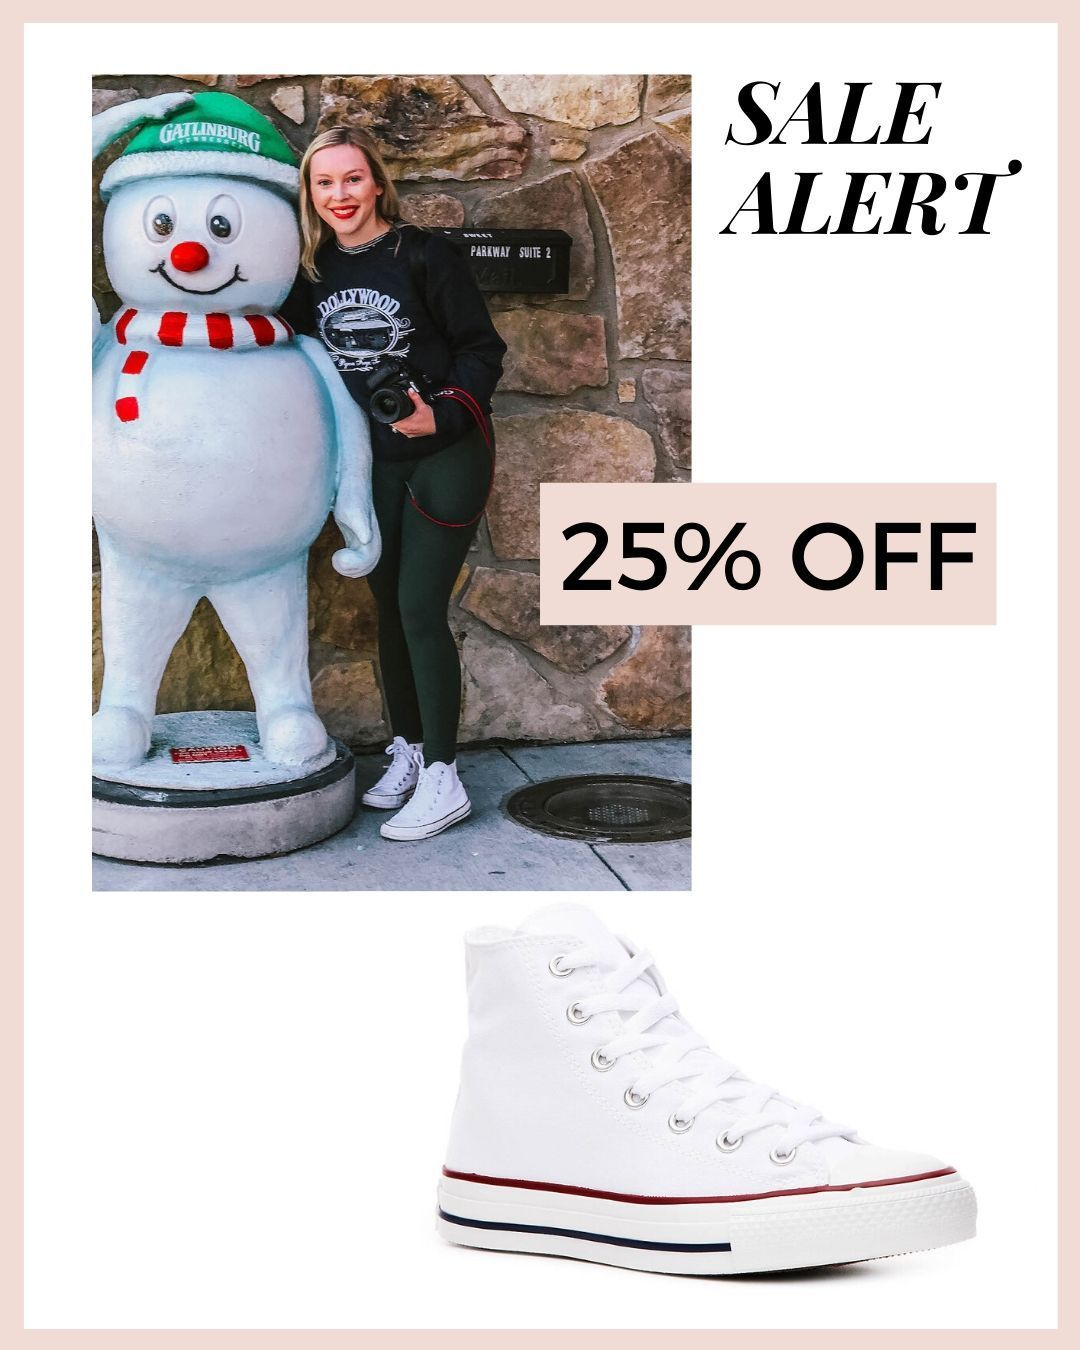 Converse white high tops on sale for 25